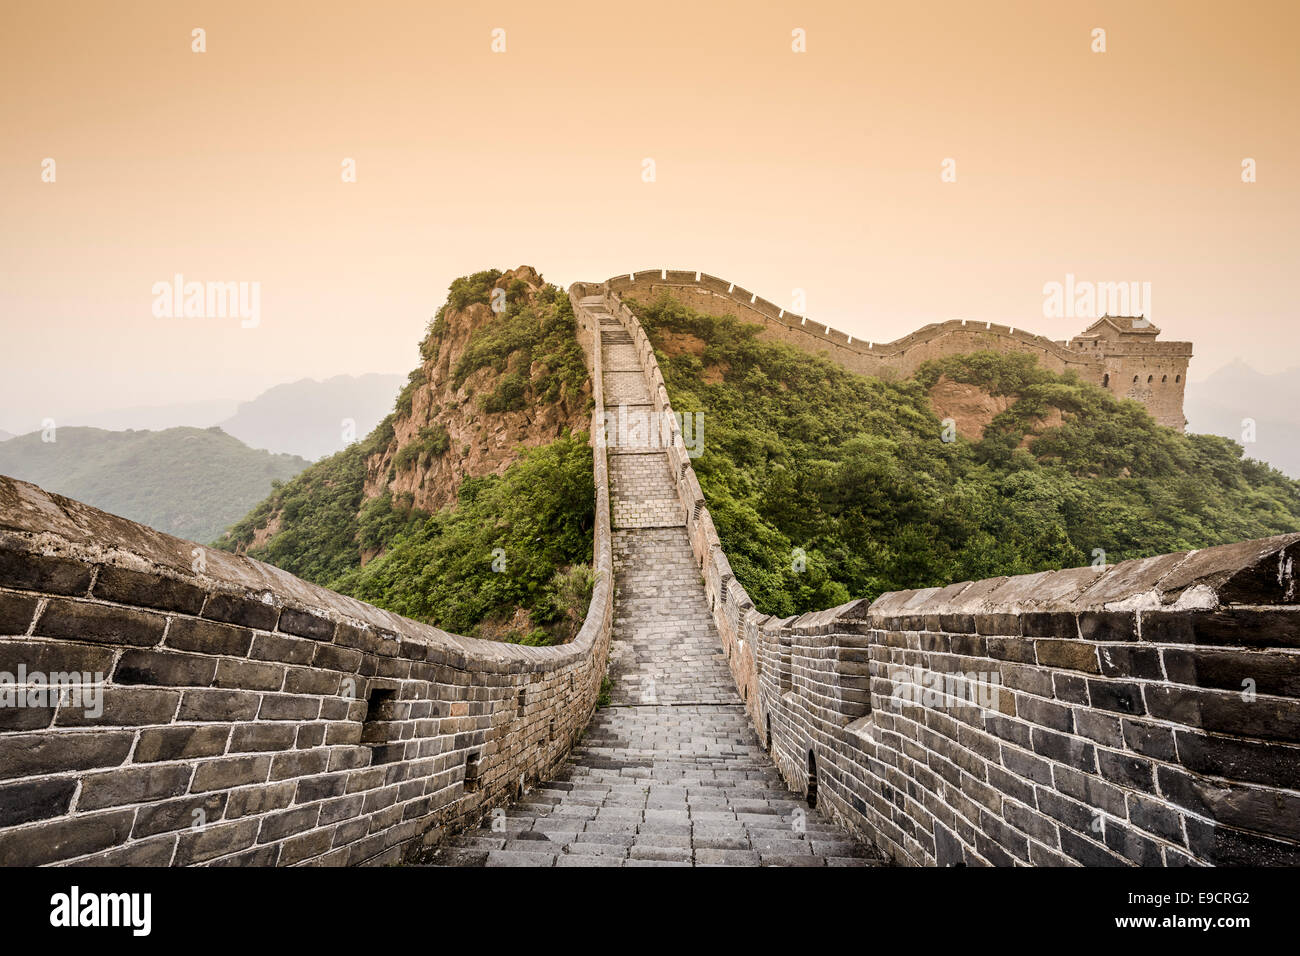 Great Wall of China at the Jinshanling Section on a hazy day. - Stock Image